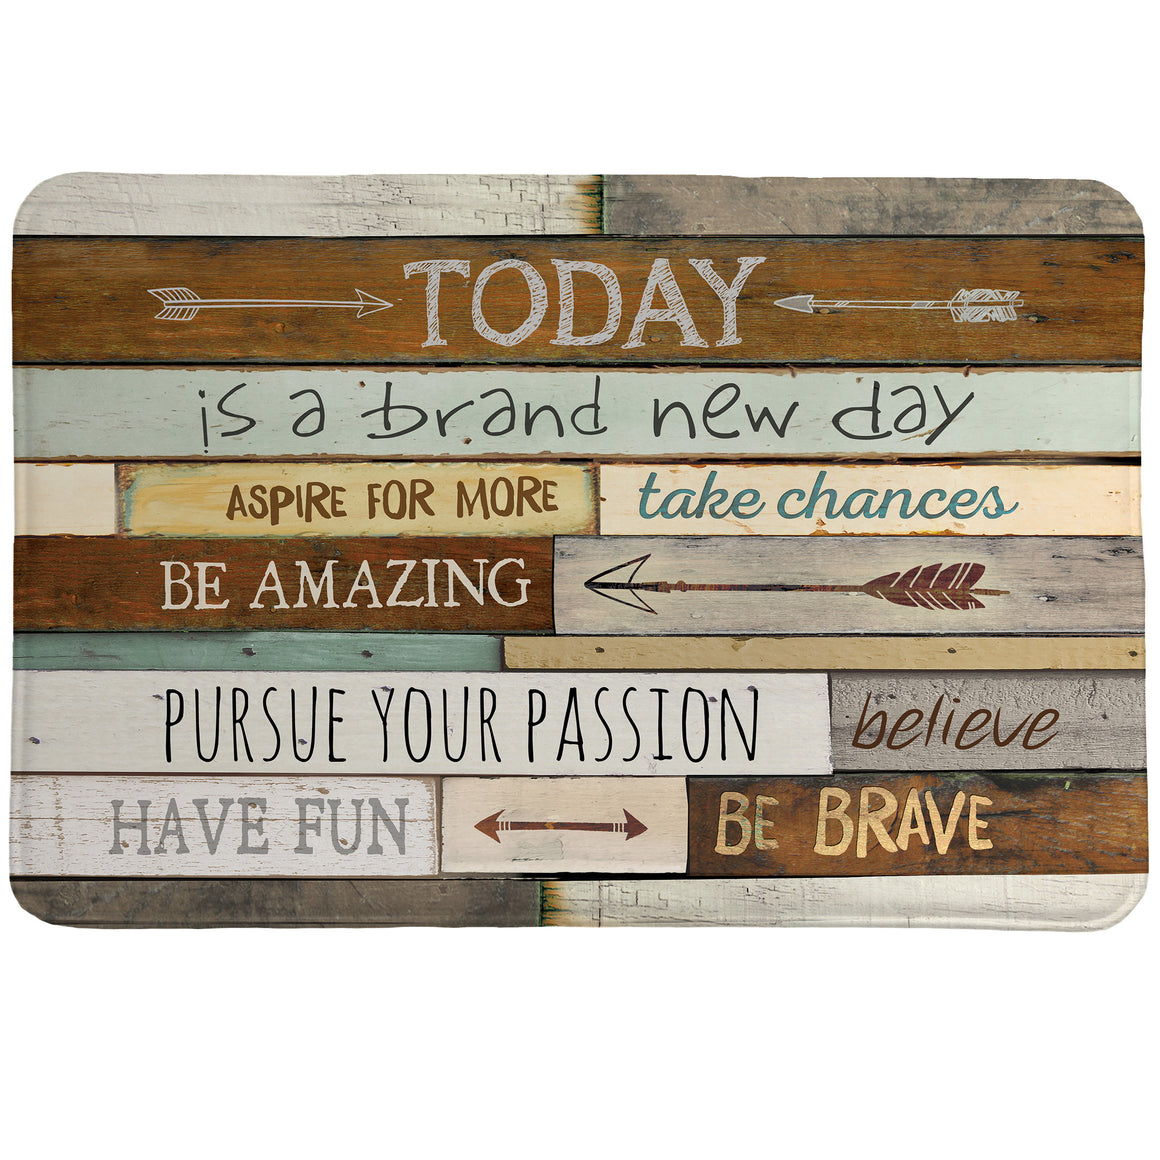 Inspiring Mantra Memory Foam Rug features positive sayings with a salvaged wood backdrop accompanied by various arrows.